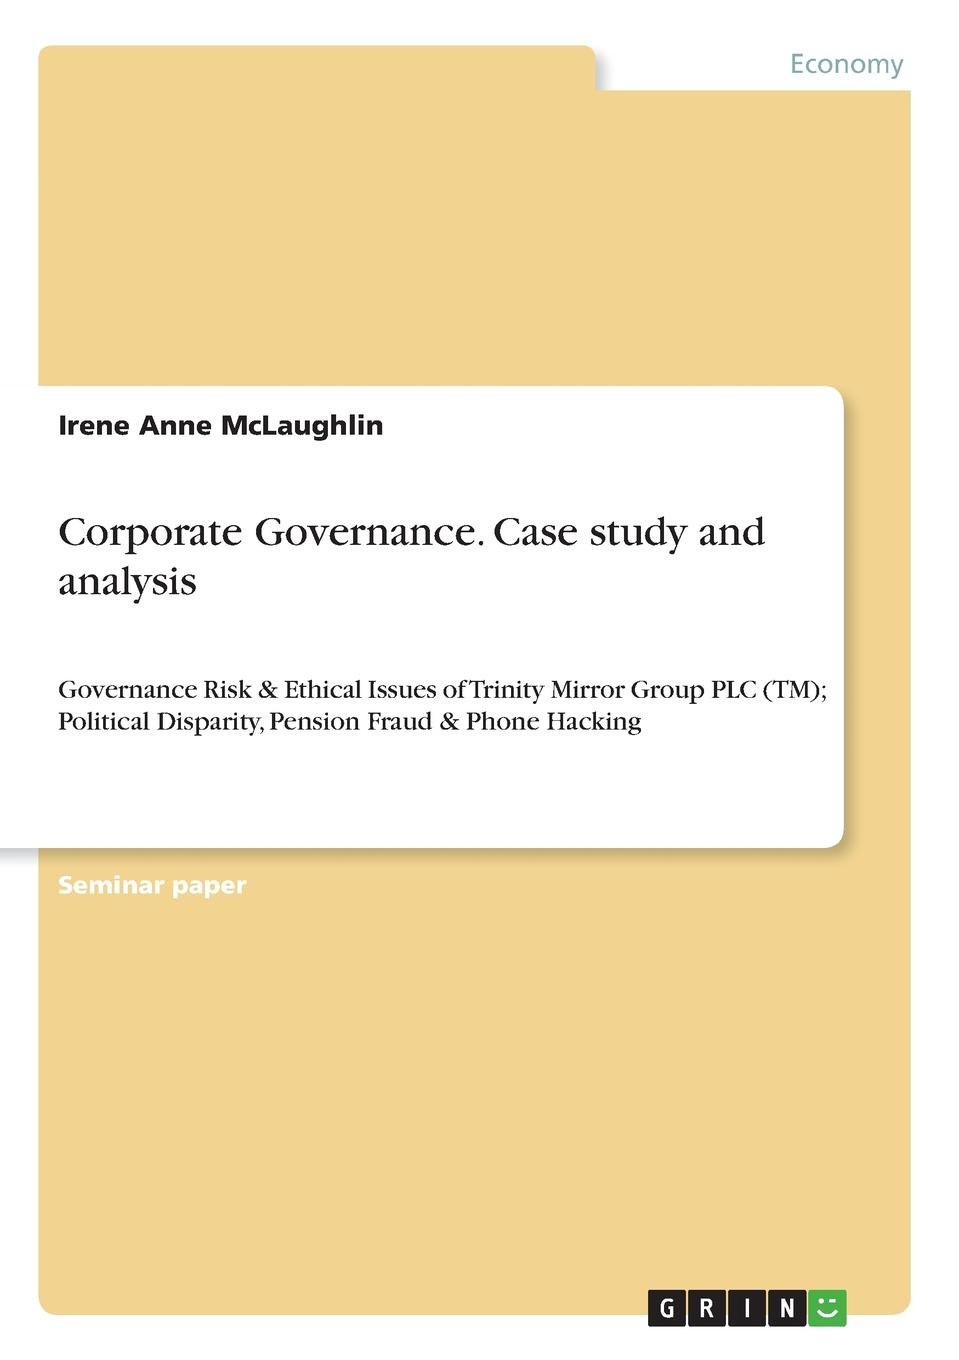 Irene Anne McLaughlin Corporate Governance. Case study and analysis malcolm kemp extreme events robust portfolio construction in the presence of fat tails isbn 9780470976791